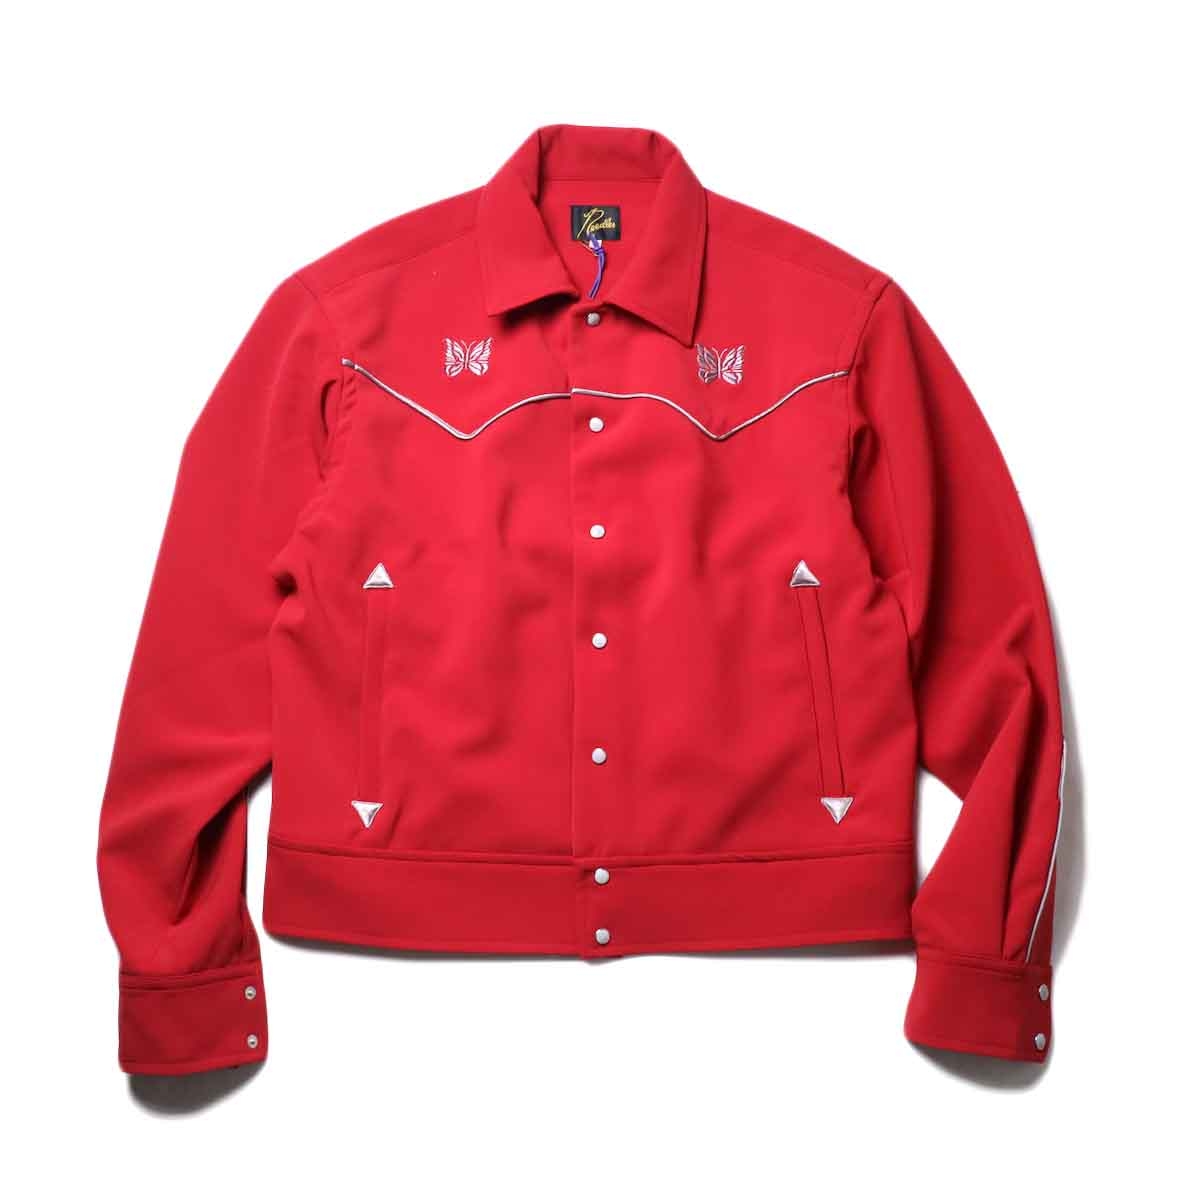 Needles / PIPING COWBOY JAC - PE/PU DOUBLE CLOTH (Red)